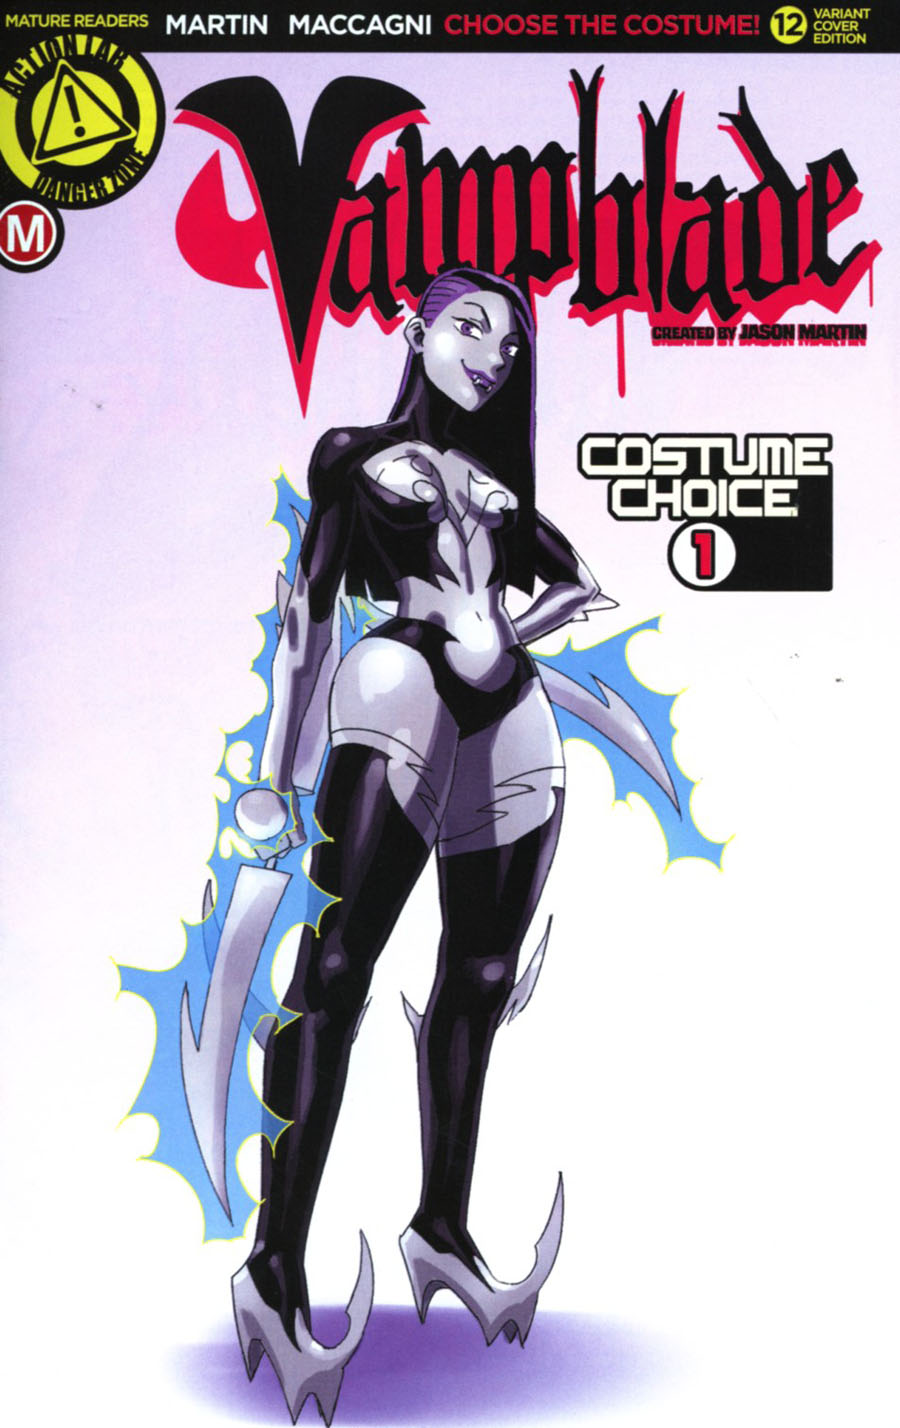 Vampblade #12 Cover C Variant Costume Choice 1 Cover